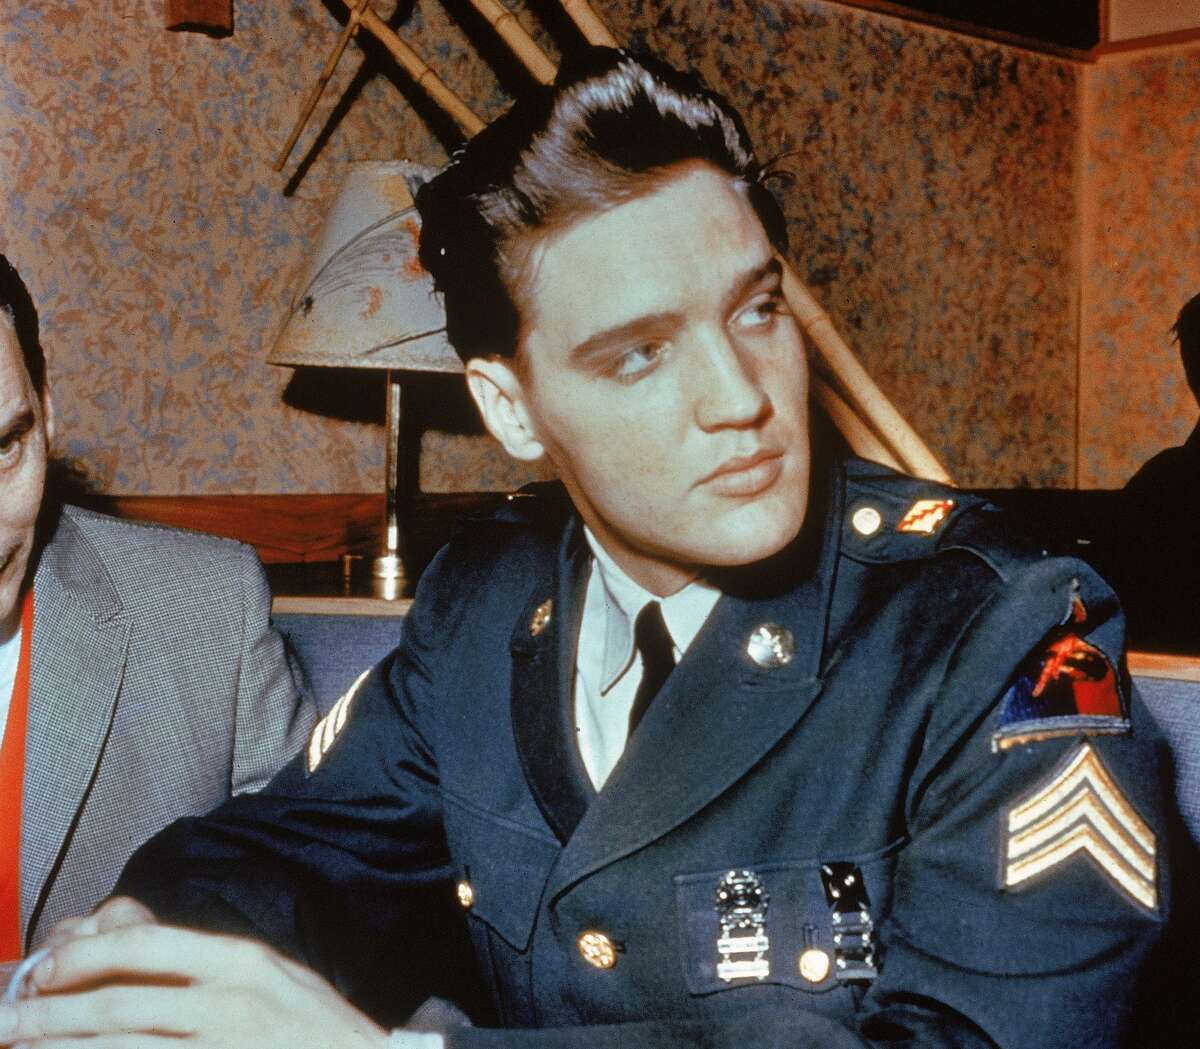 Circa 1958, American singer and actor Elvis Presley (1935 - 1977) sits in a restaurant wearing his US Army uniform. (Photo by Getty Images/Getty Images)